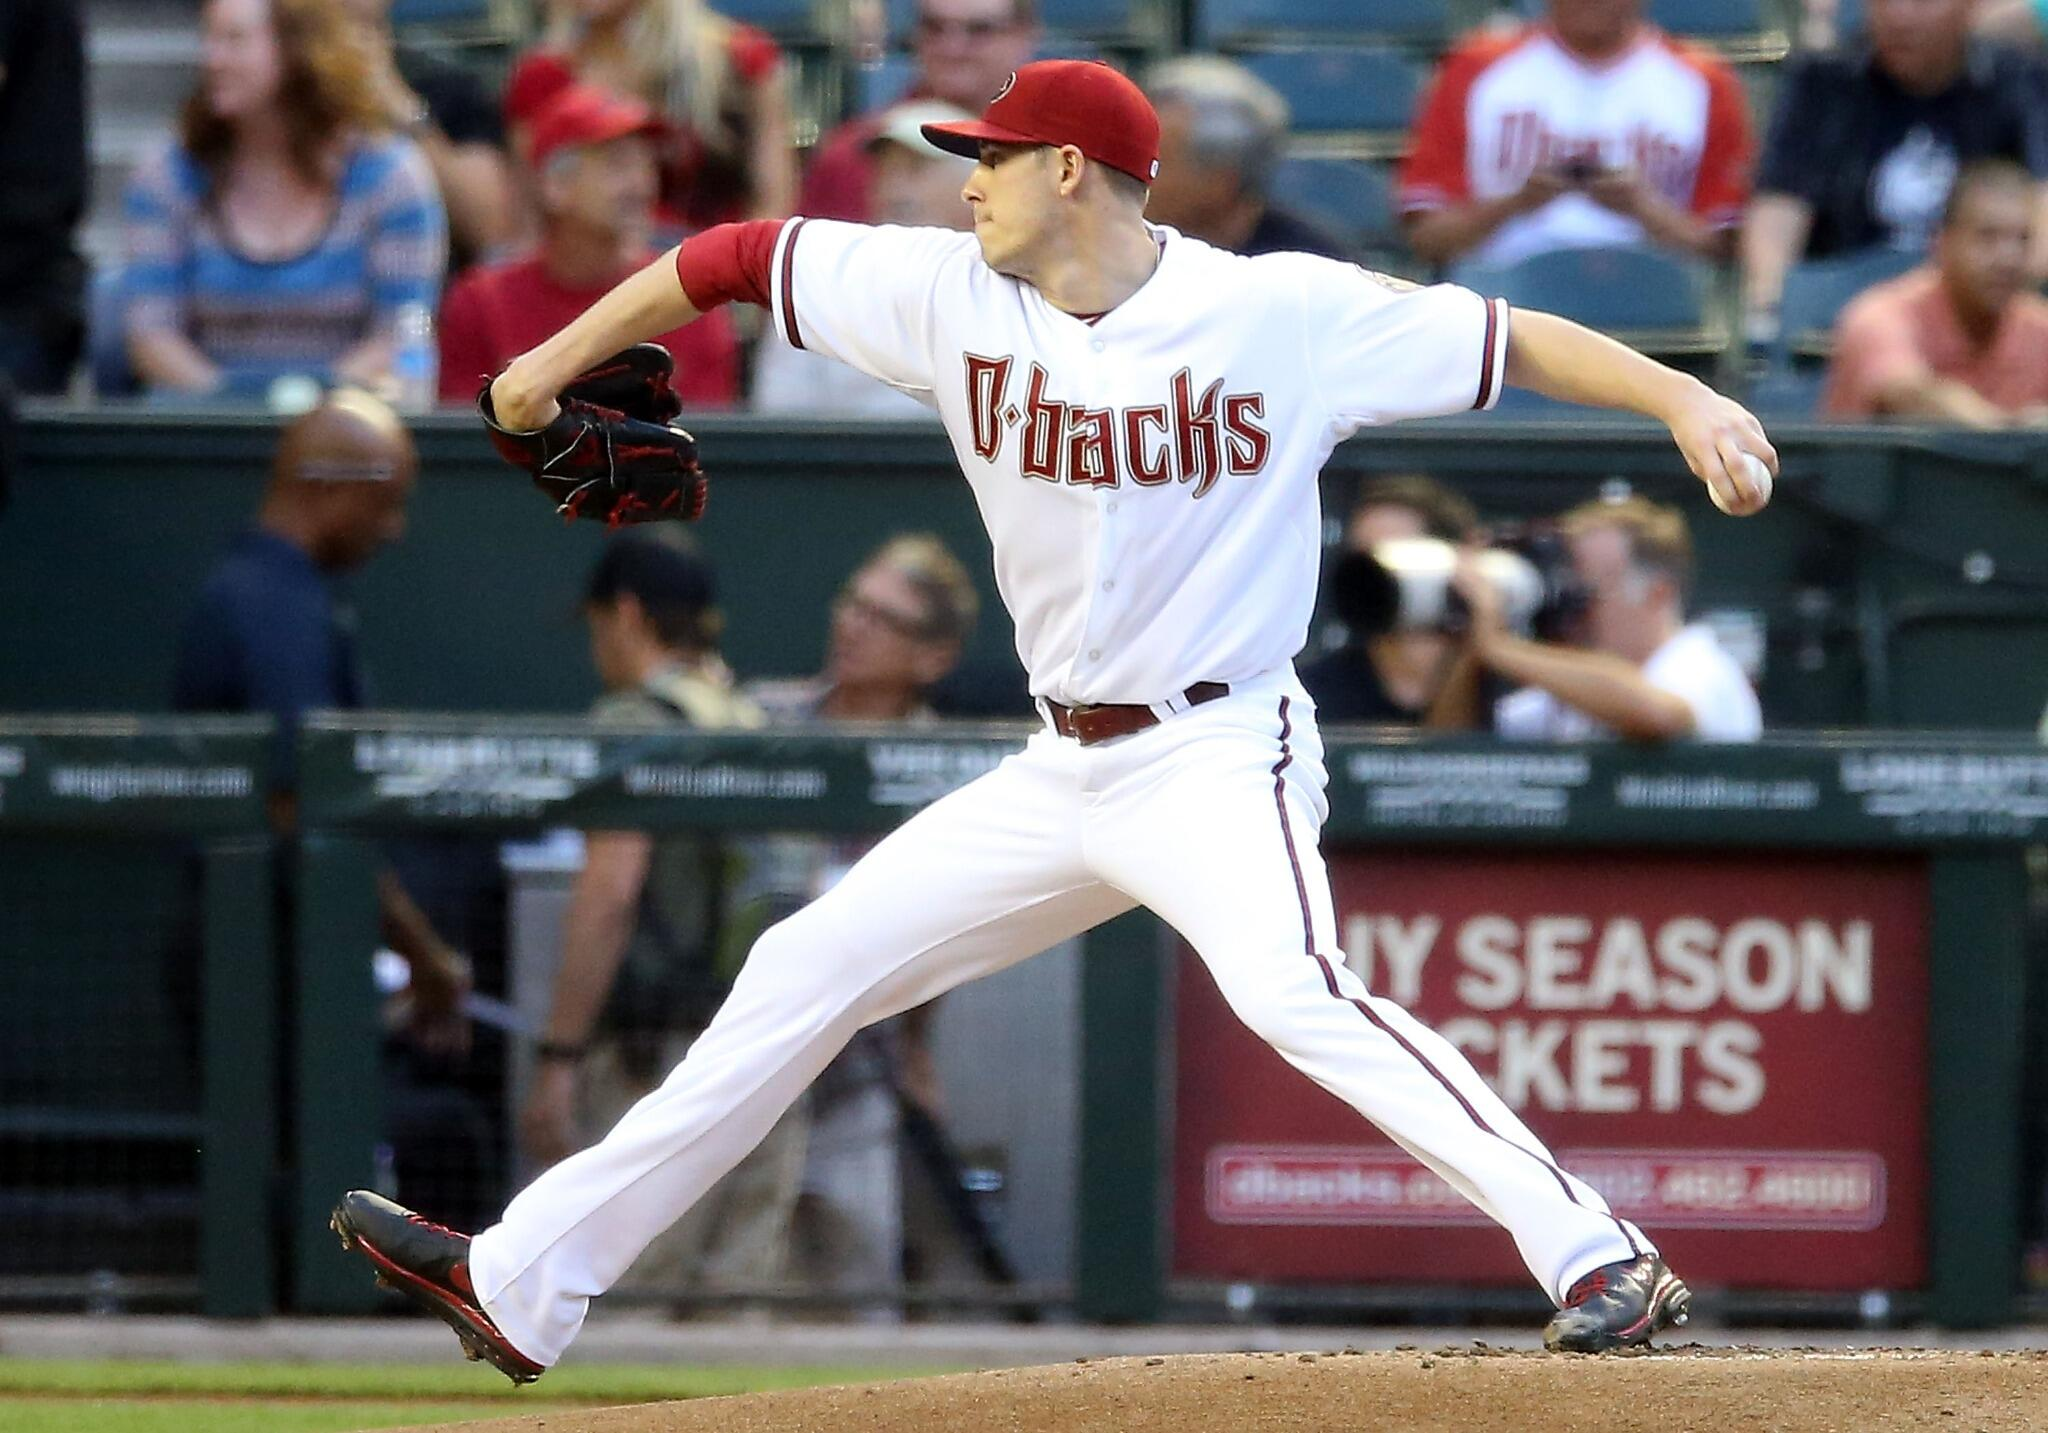 .@PatrickCorbin11 improves to 6-0 and is now 1 of 2 #Dbacks LHP to start the season 6-0 or better (also @RJ51Photos). http://t.co/dK0ffm3leS